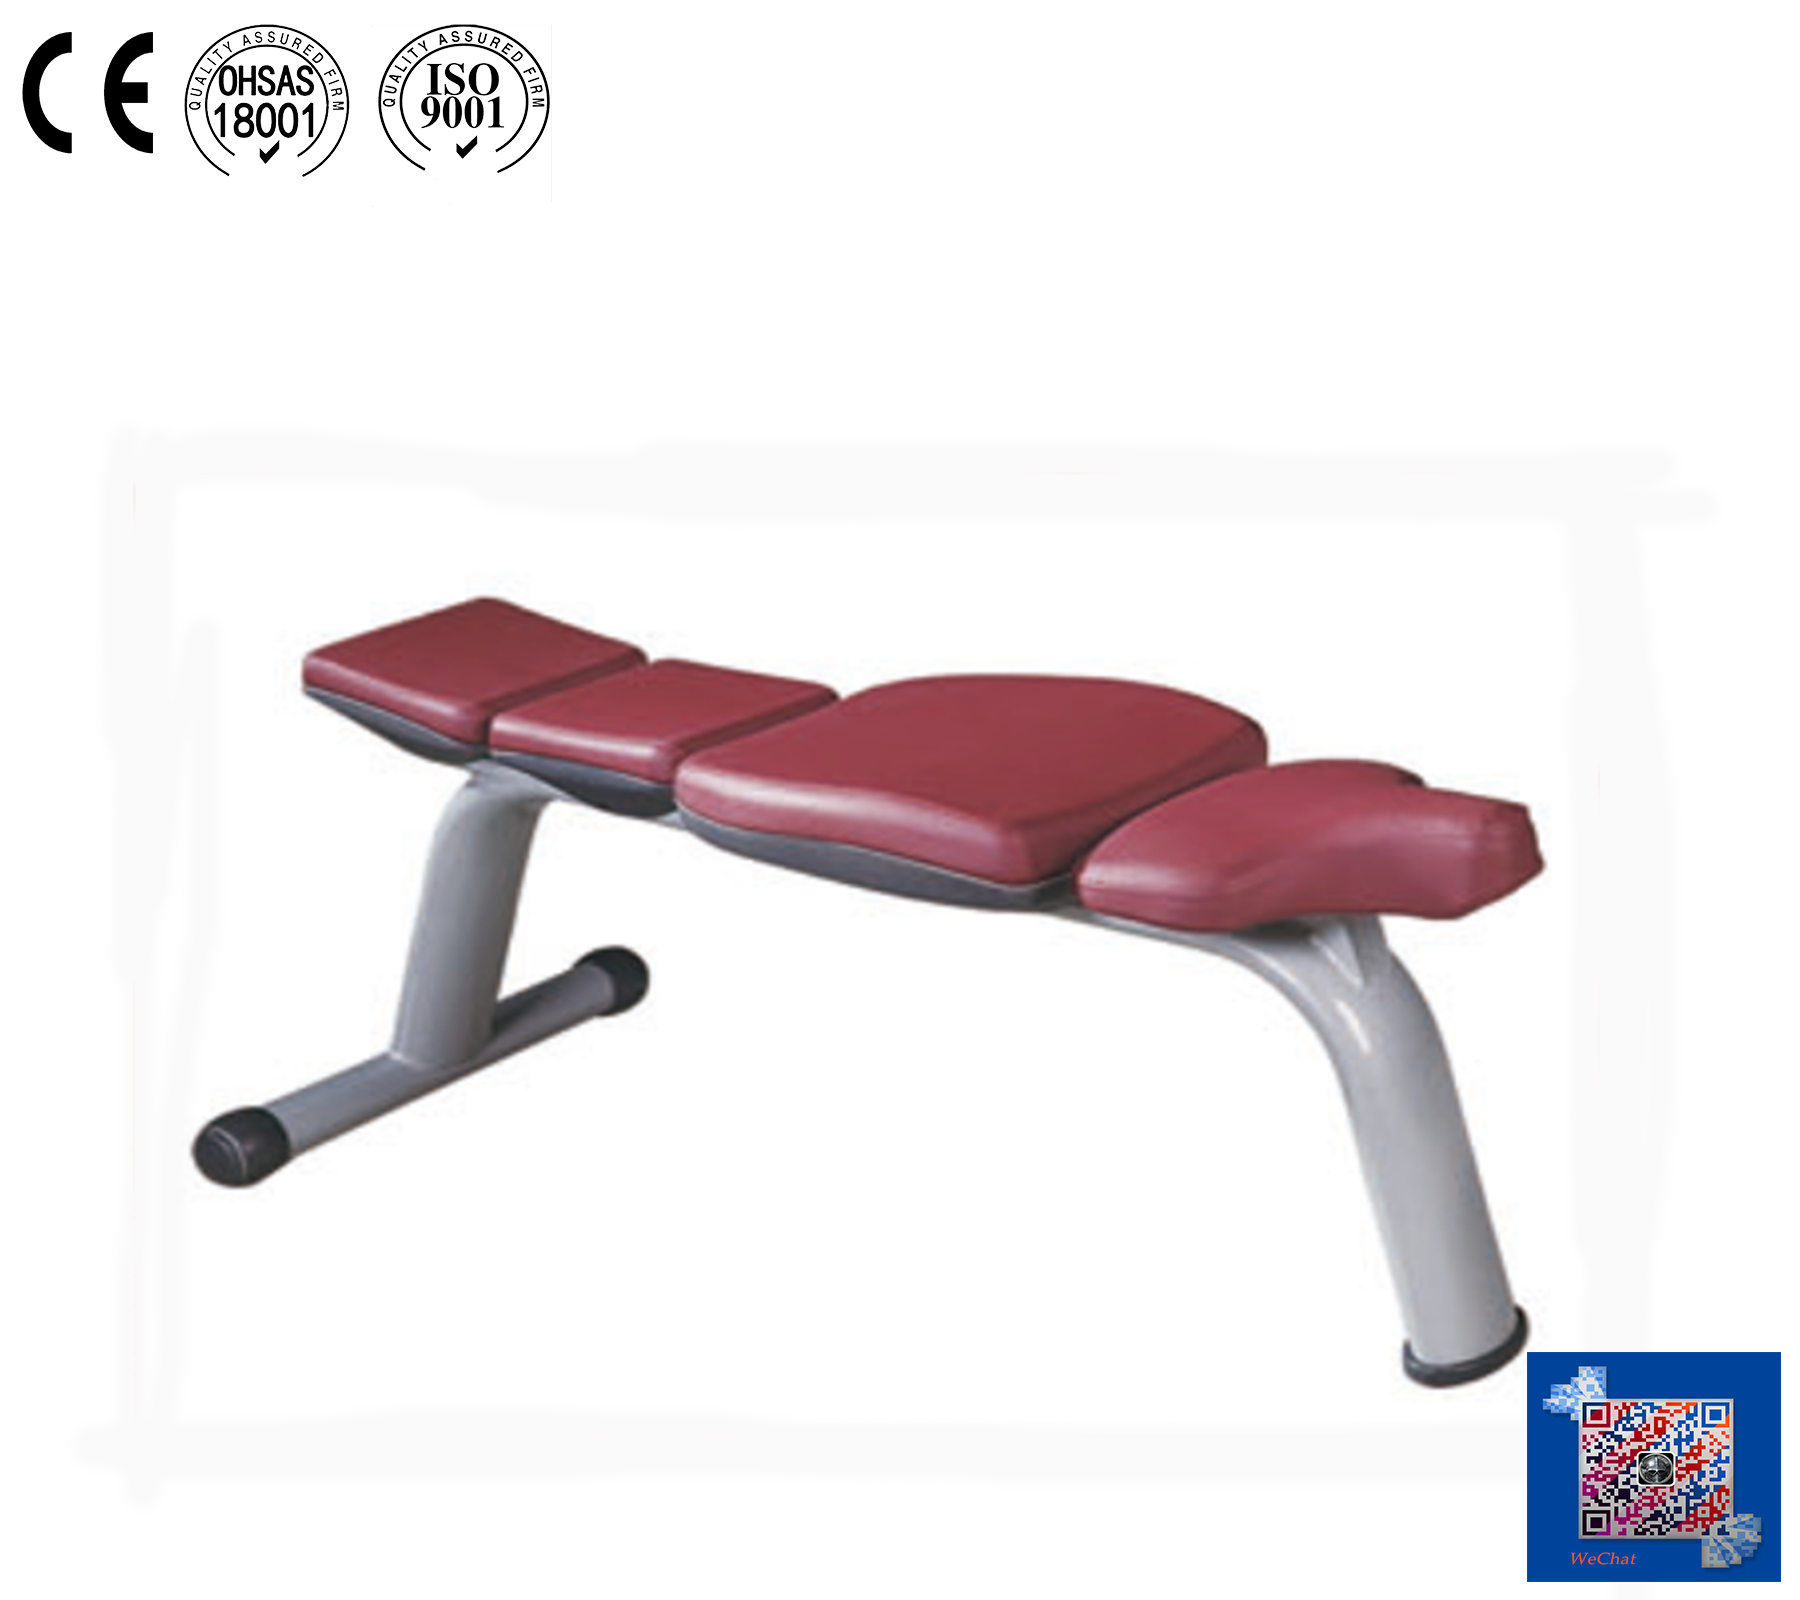 Phenomenal Workout Fitness Equipment Dumbbell Weight Utility And Flat Bench Press Dimensions Ac A033 Flat Utility Bench Buy Equipment Fitness Fitness Andrewgaddart Wooden Chair Designs For Living Room Andrewgaddartcom